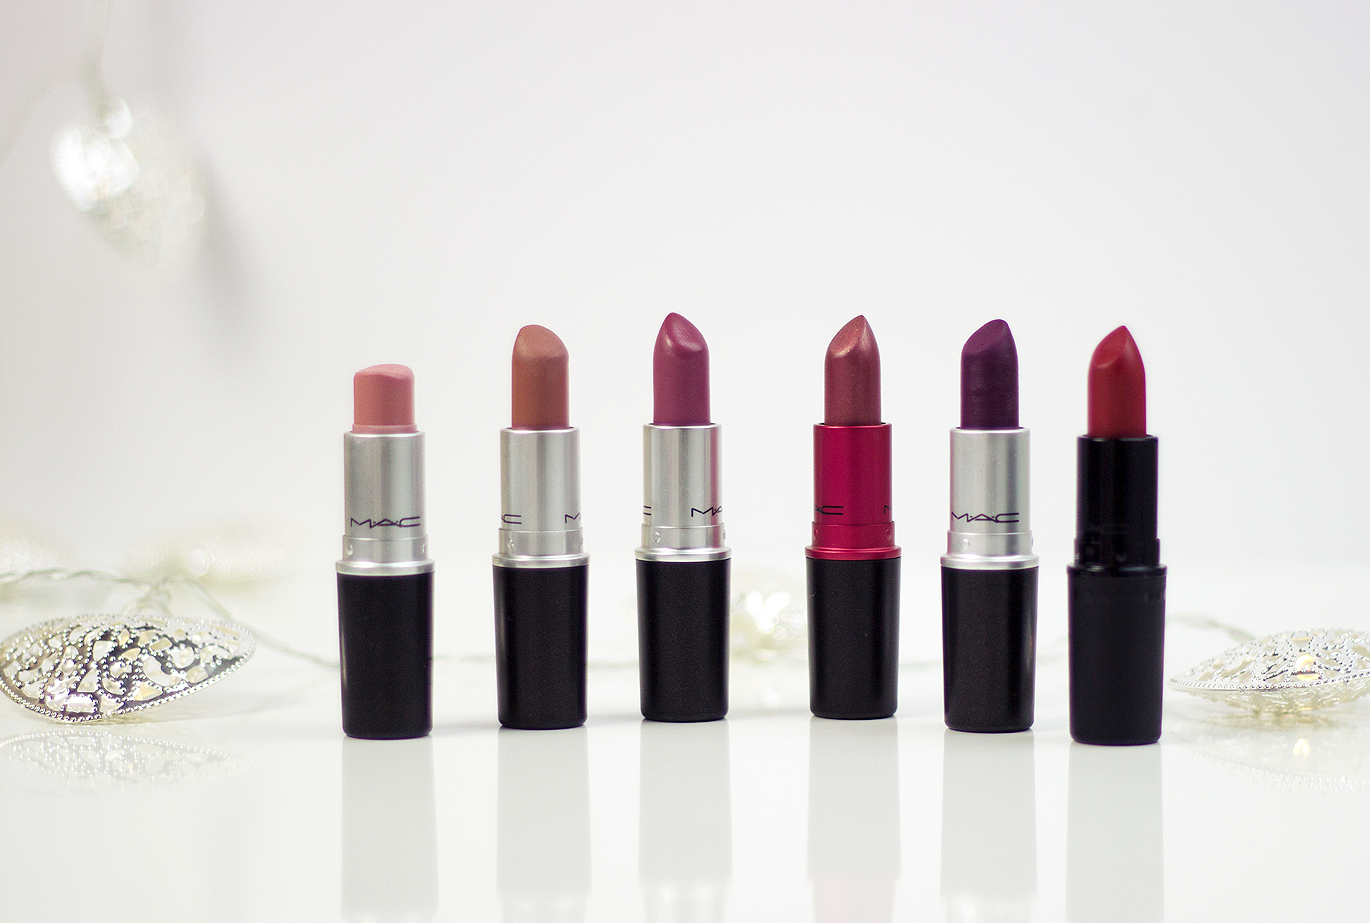 Must-have MAC Lipsticks, MAC Creme Cup, MAC Velvet Teddy, MAC Plumful, MAC Viva Glam IV, MAC Rebel, MAC Ruby Woo